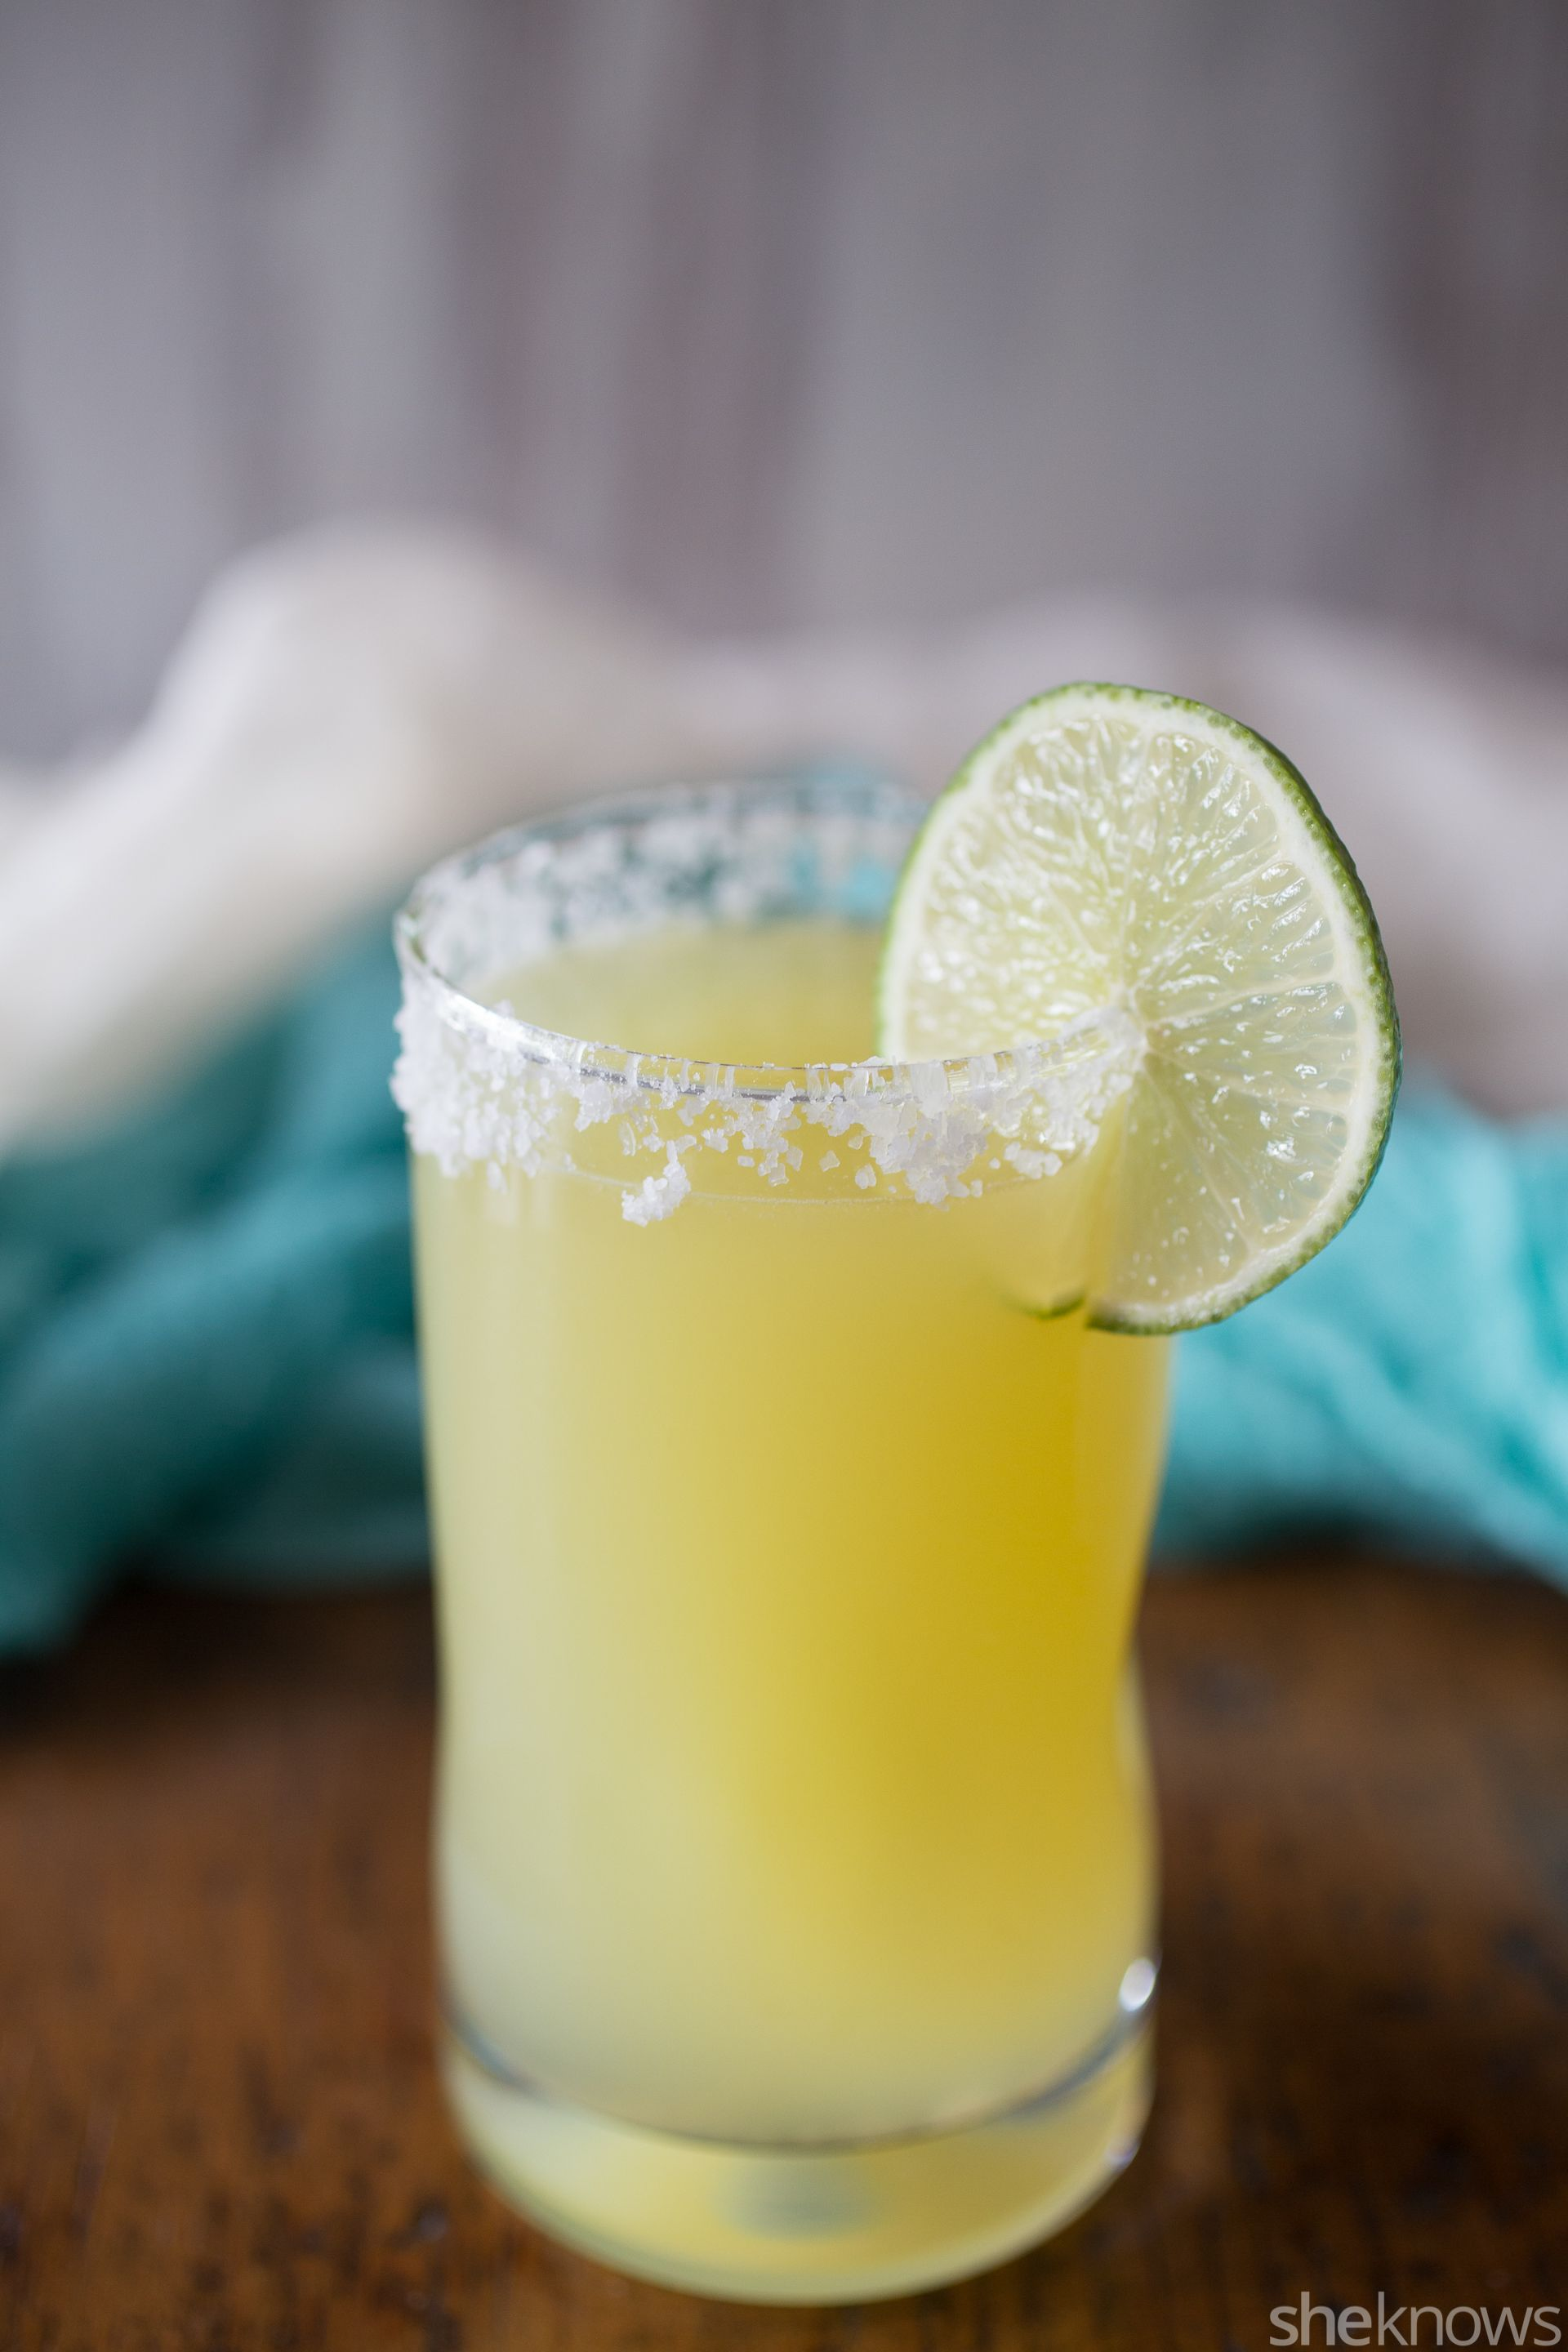 Homemade frozen margaritas are better than anything you'll get from a bottle #frozenmargaritarecipes